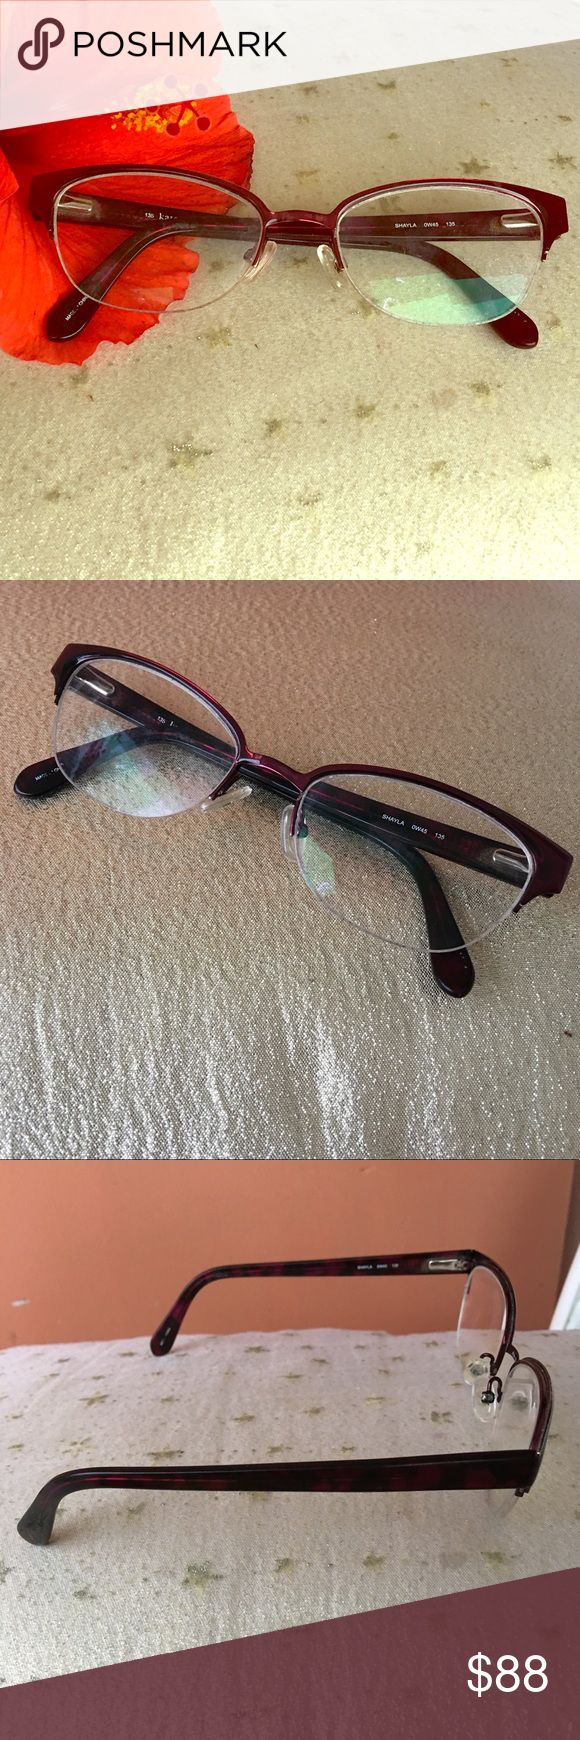 KATE SPADE Shayla purple frames eye glasses Pre-loved KATE SPADE Shayla purple frames eye glasses. A little wear but lots of life left. Not sure of lens strength but ready for you to put in your own. kate spade Accessories Glasses